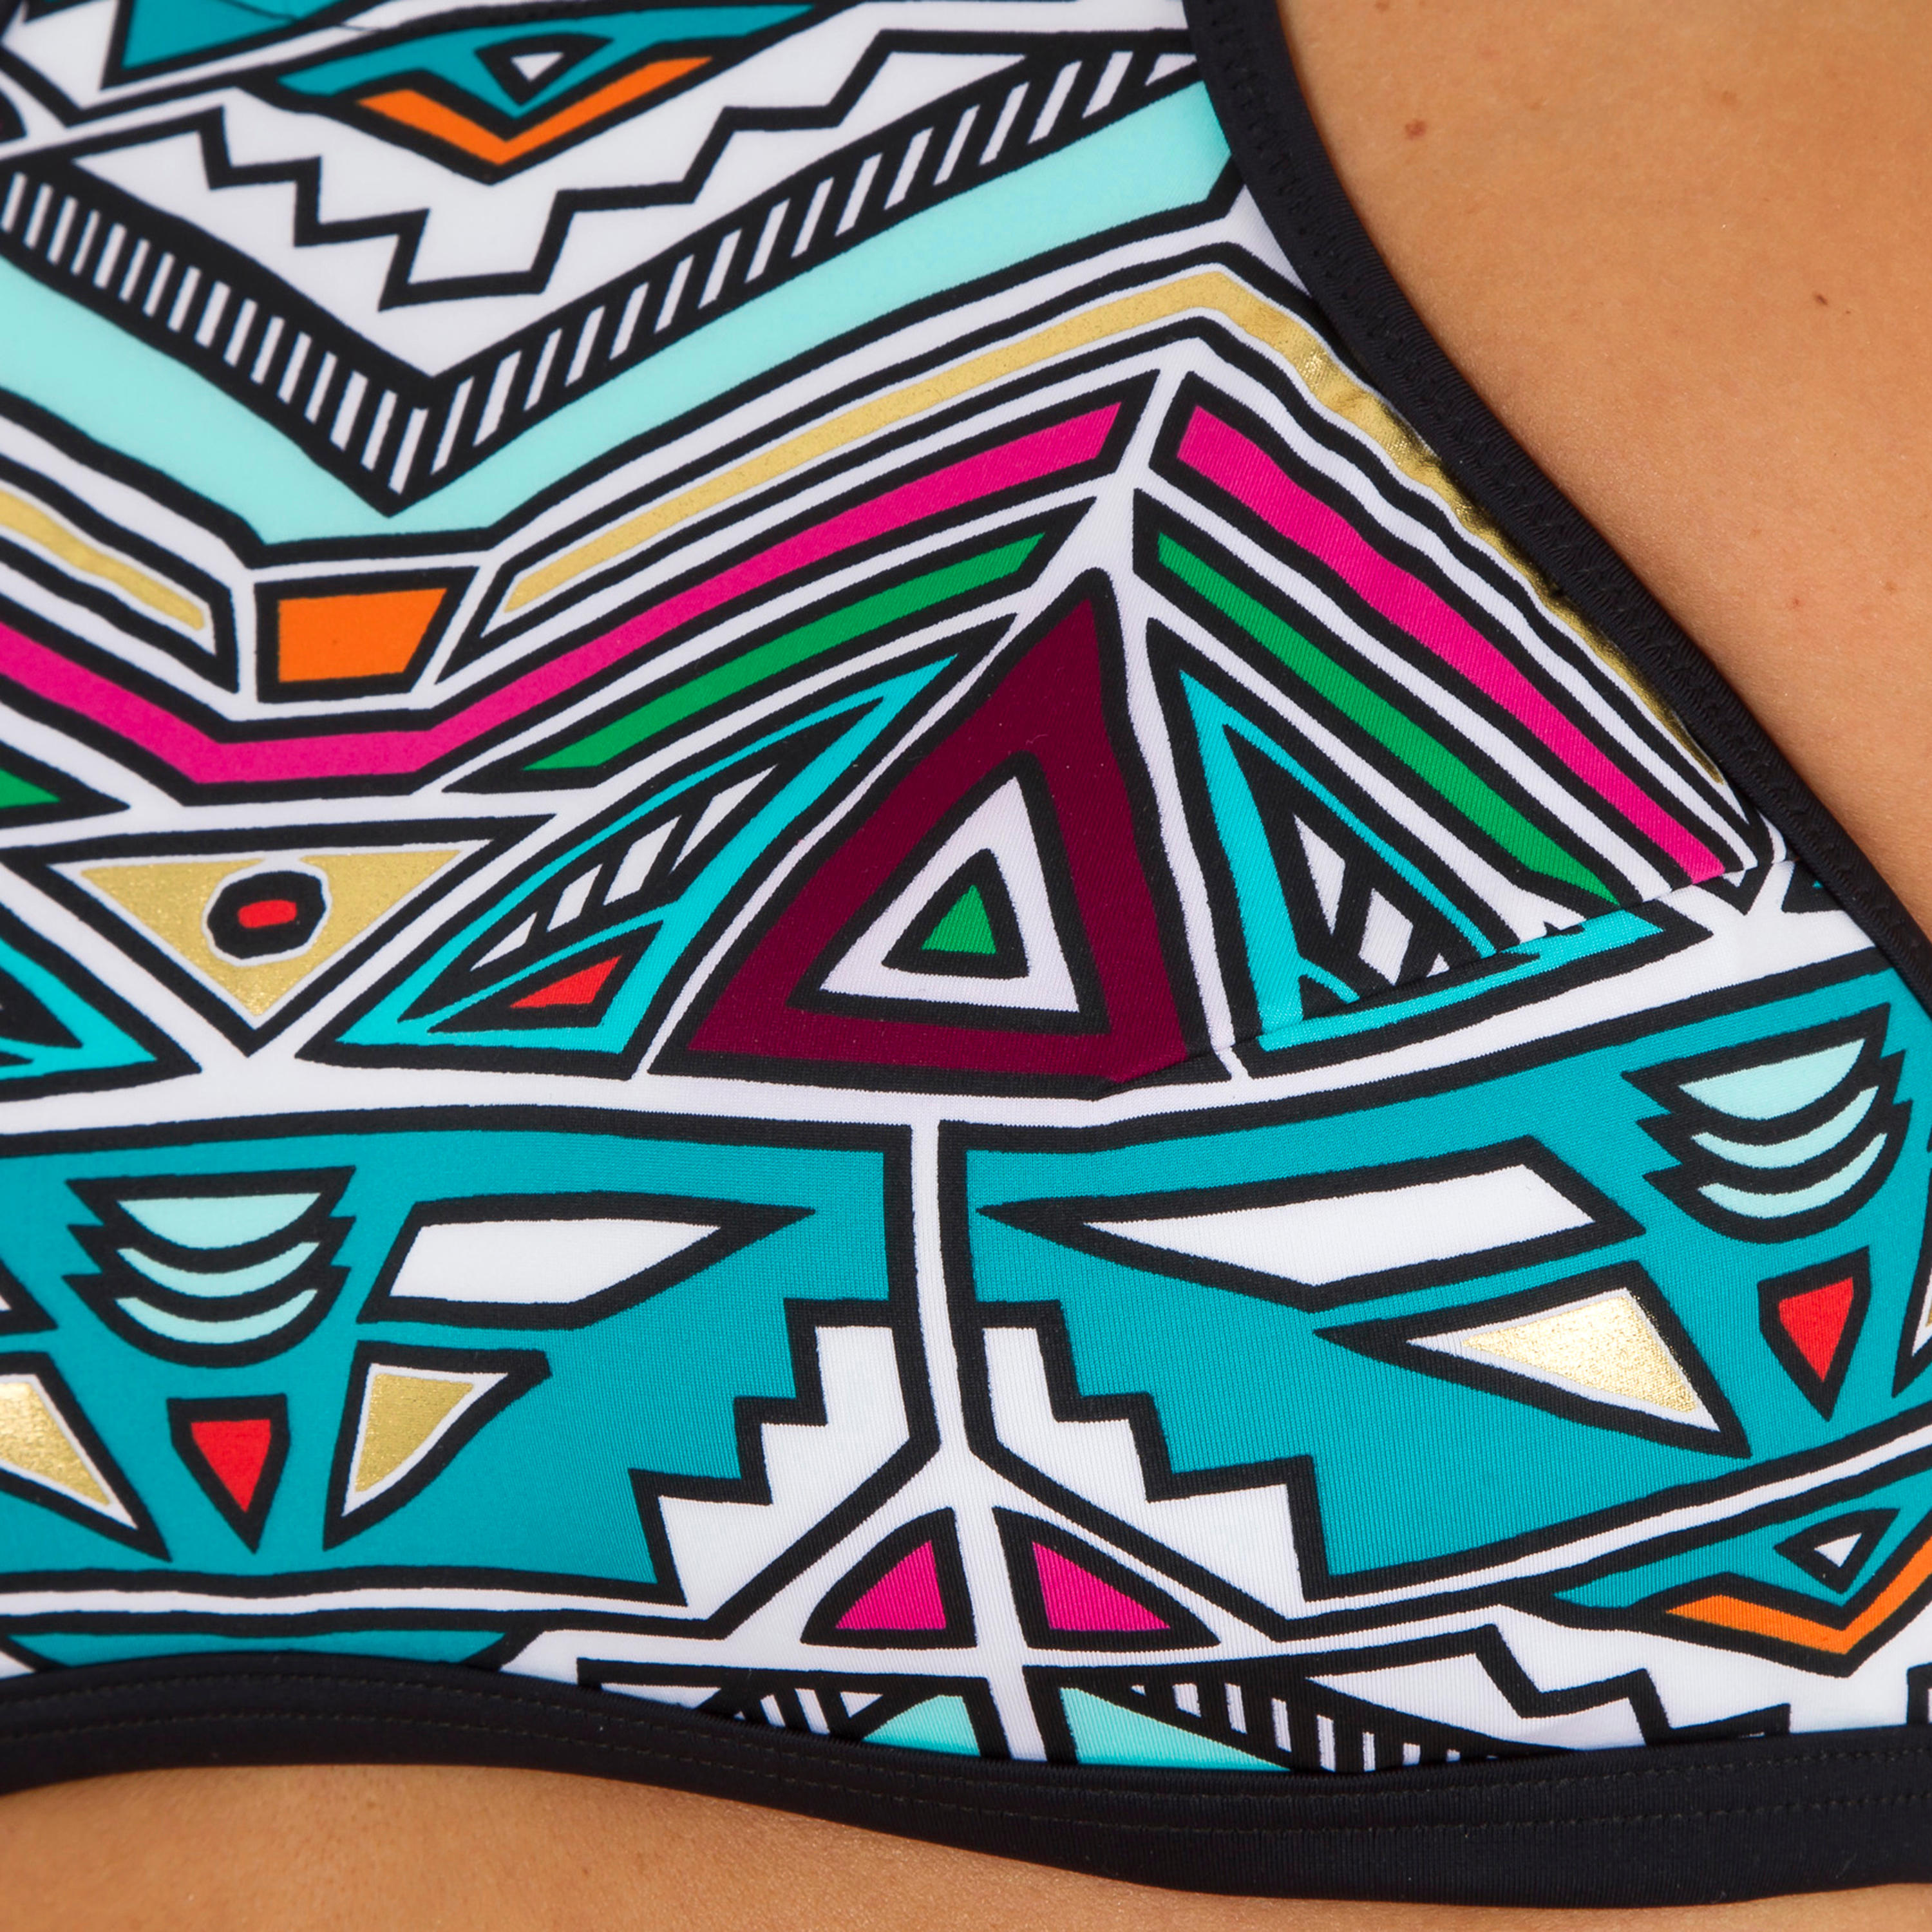 Women's Surfing Crop Top Swimsuit Top with Padded Cups - Andrea Ncolo